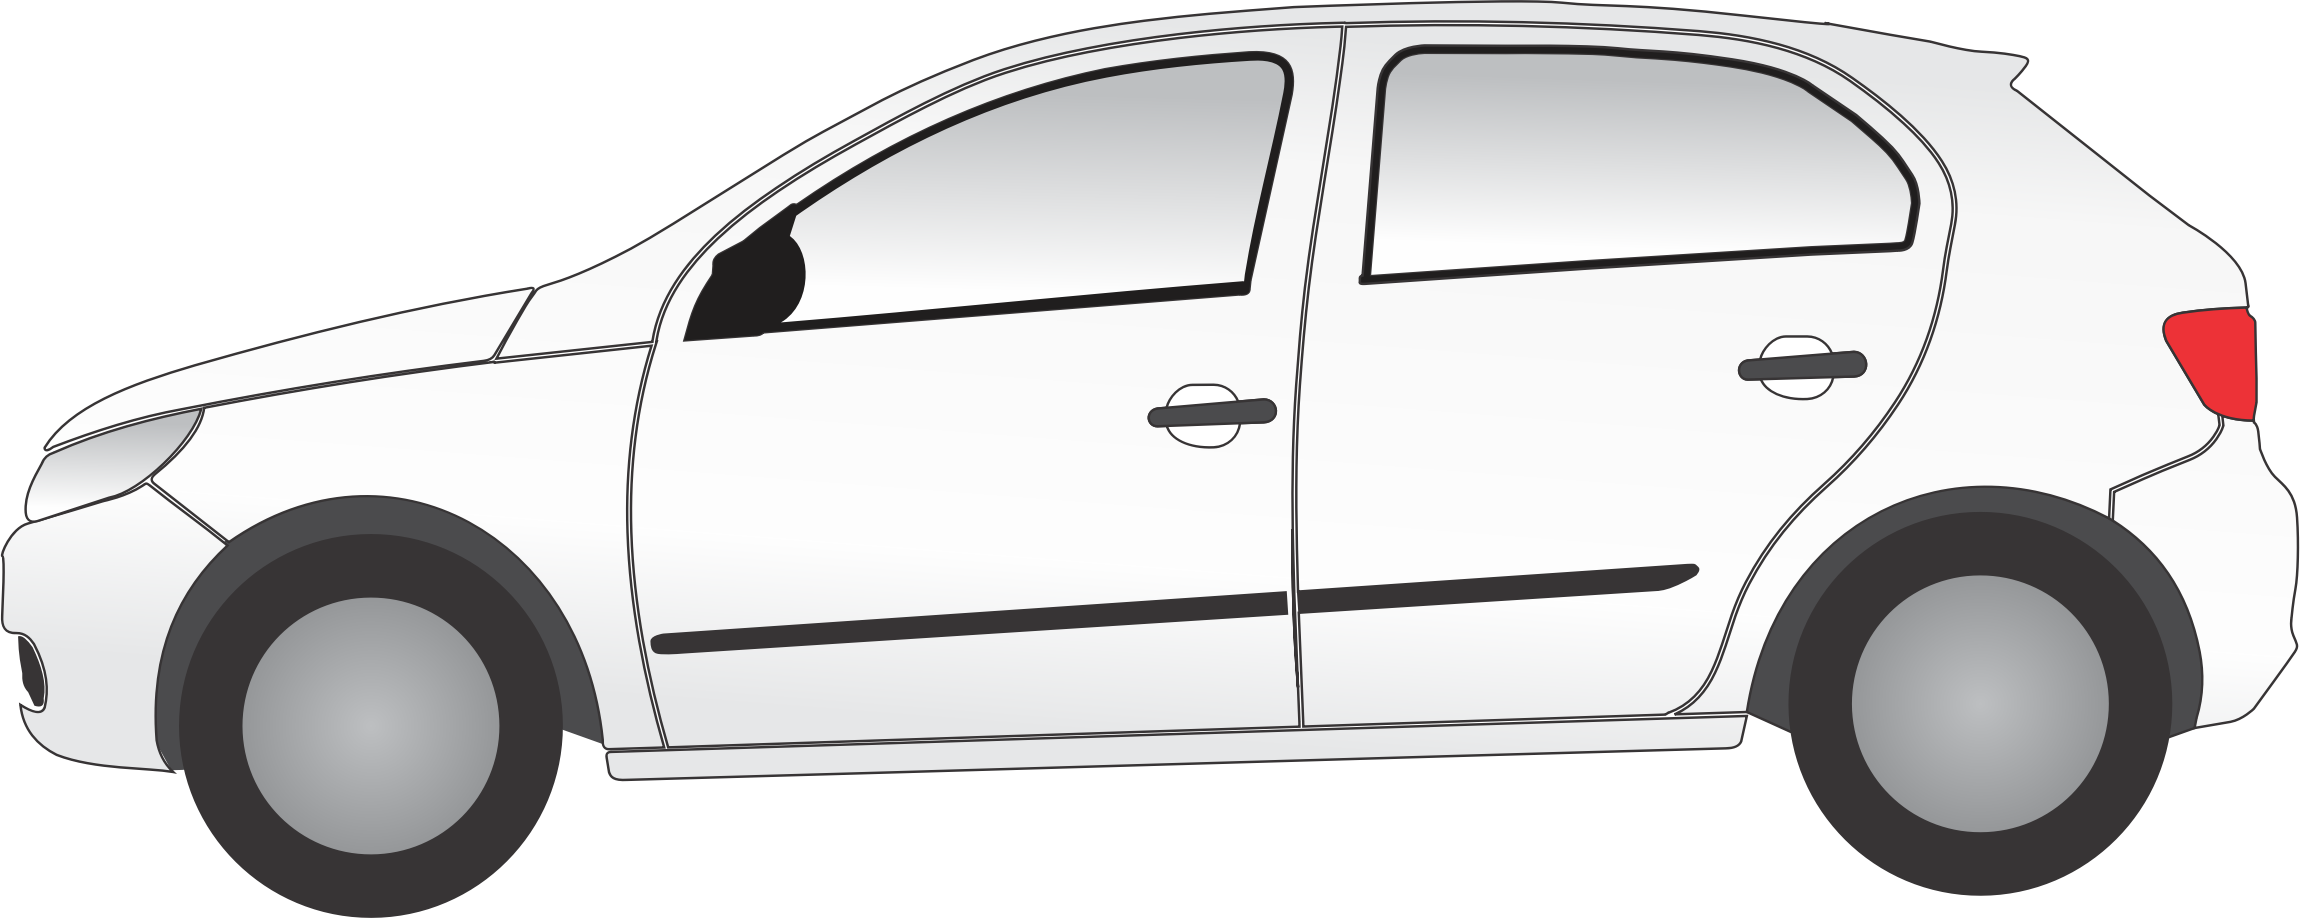 Car side view clipart clip transparent stock Car clipart black and white side view - Cliparts Suggest | Cliparts ... clip transparent stock